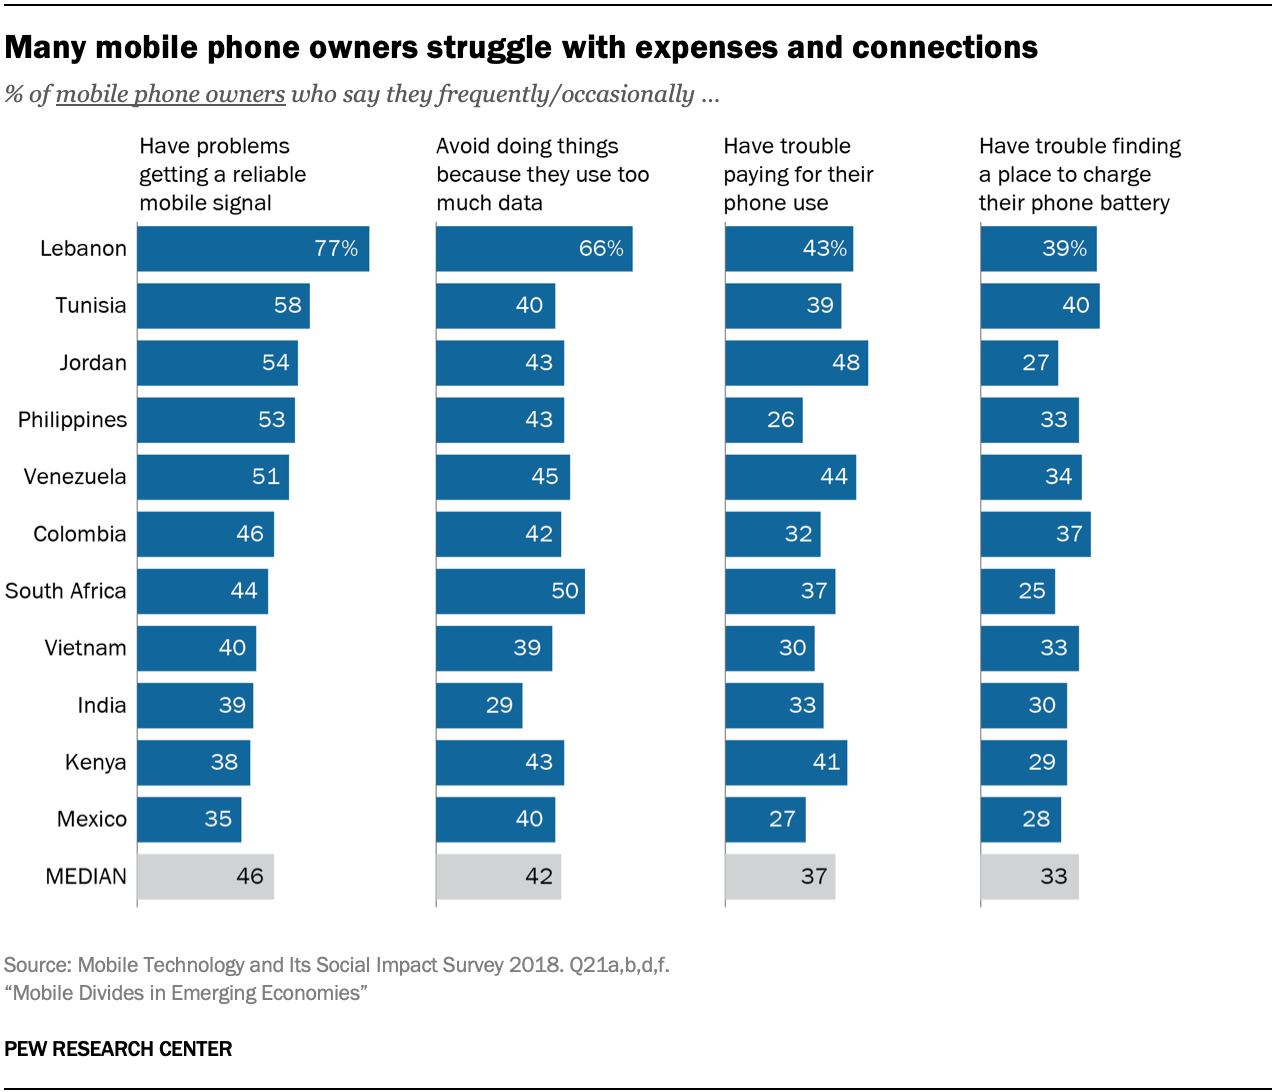 Many mobile phone owners struggle with expenses and connections